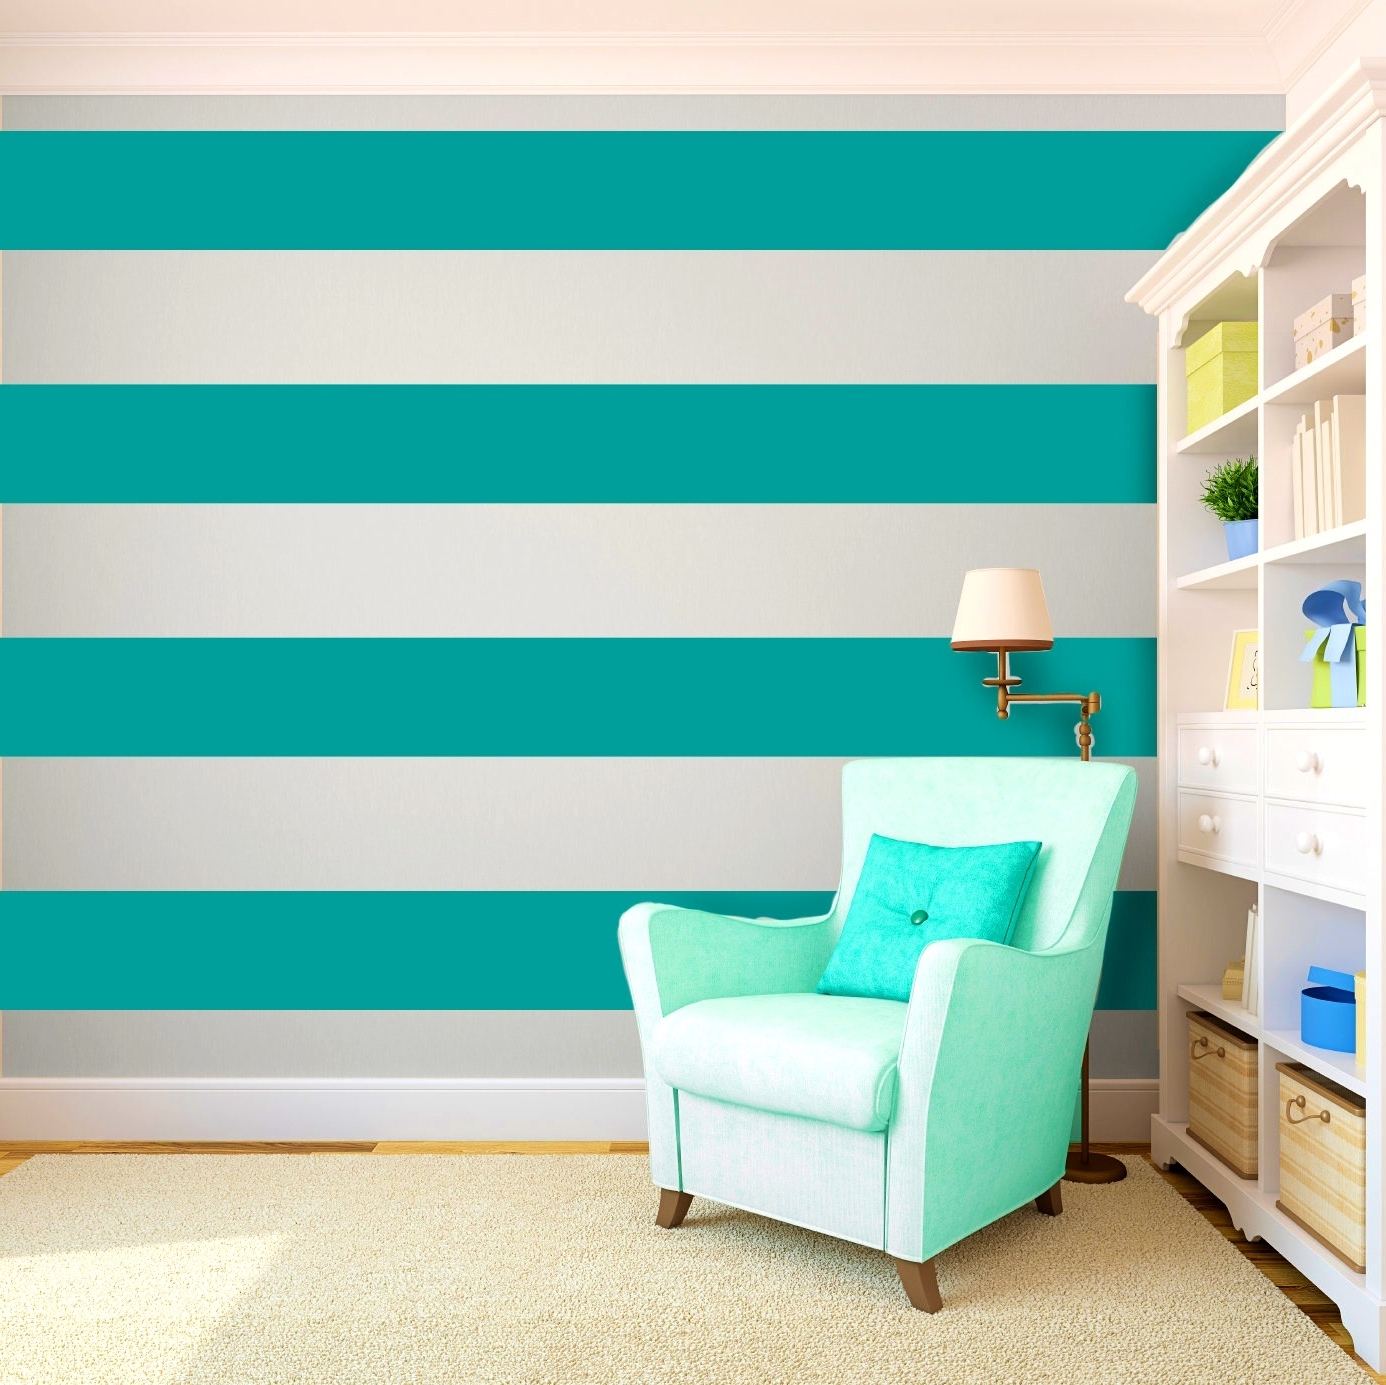 Horizontal Stripes Wall Accents In Trendy Bathroomappealing Cool Painting Ideas That Turn Walls And Ceilings (View 9 of 15)